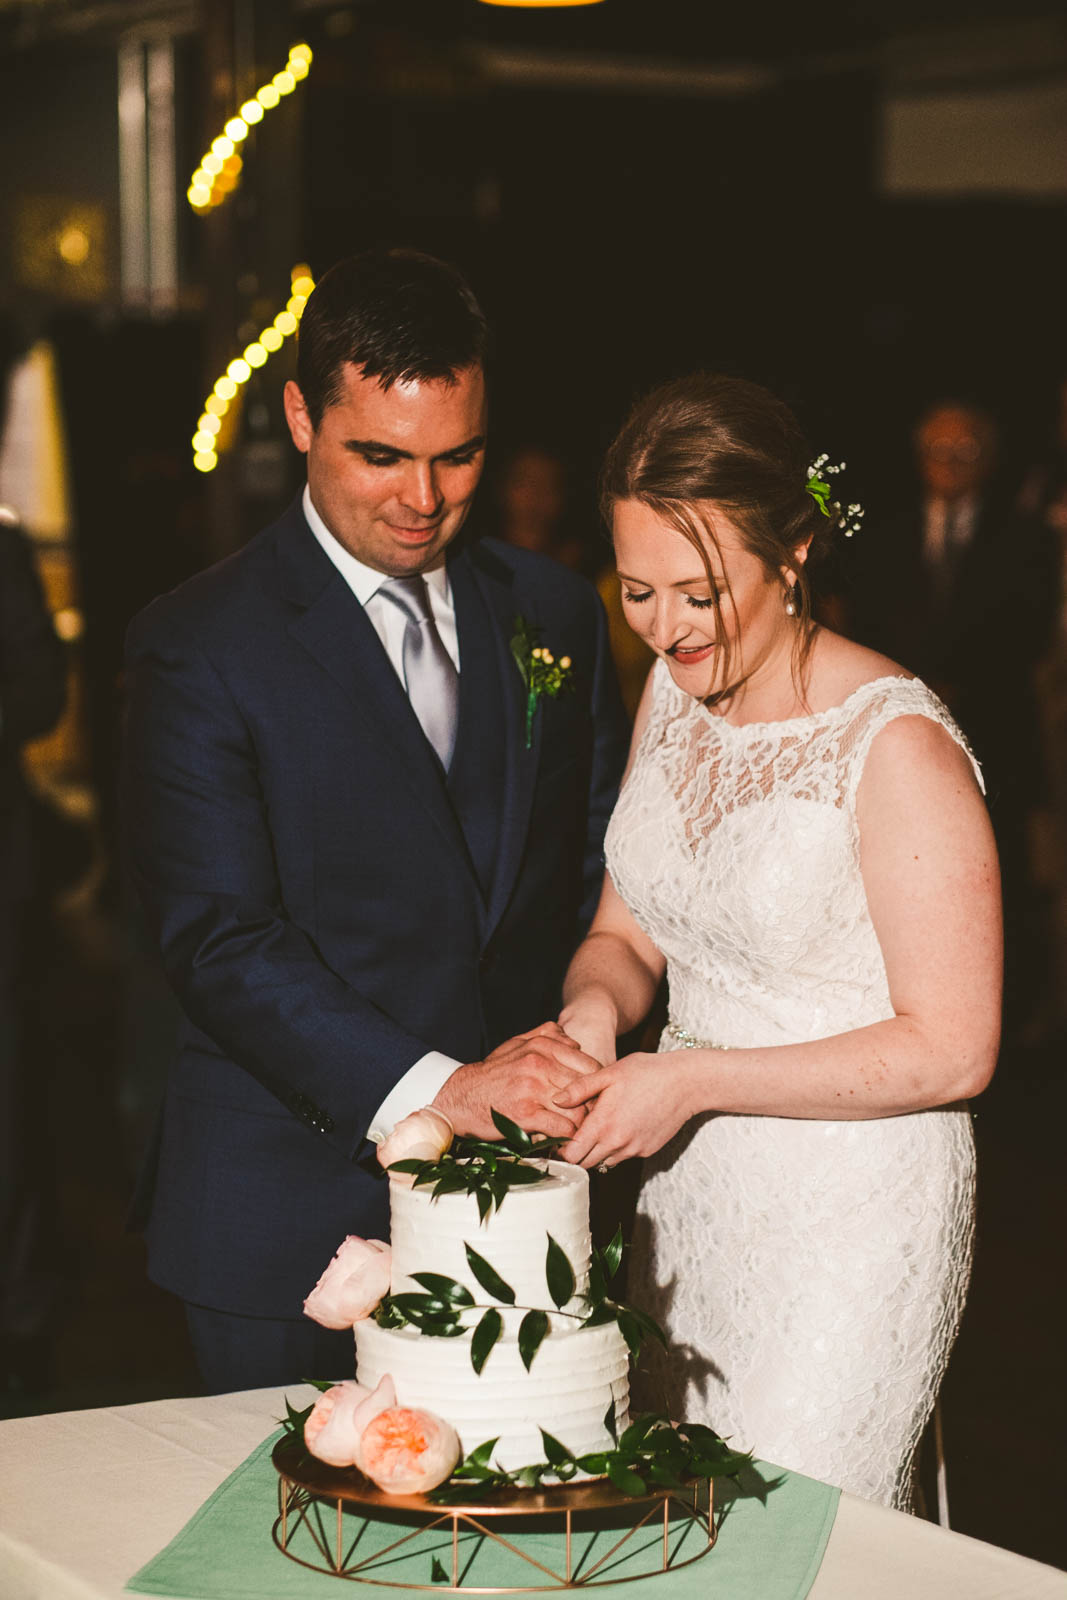 Toledo Wedding Photographers Capture Couple Cutting Cake at Reception at Maumee Bay Brewing Company